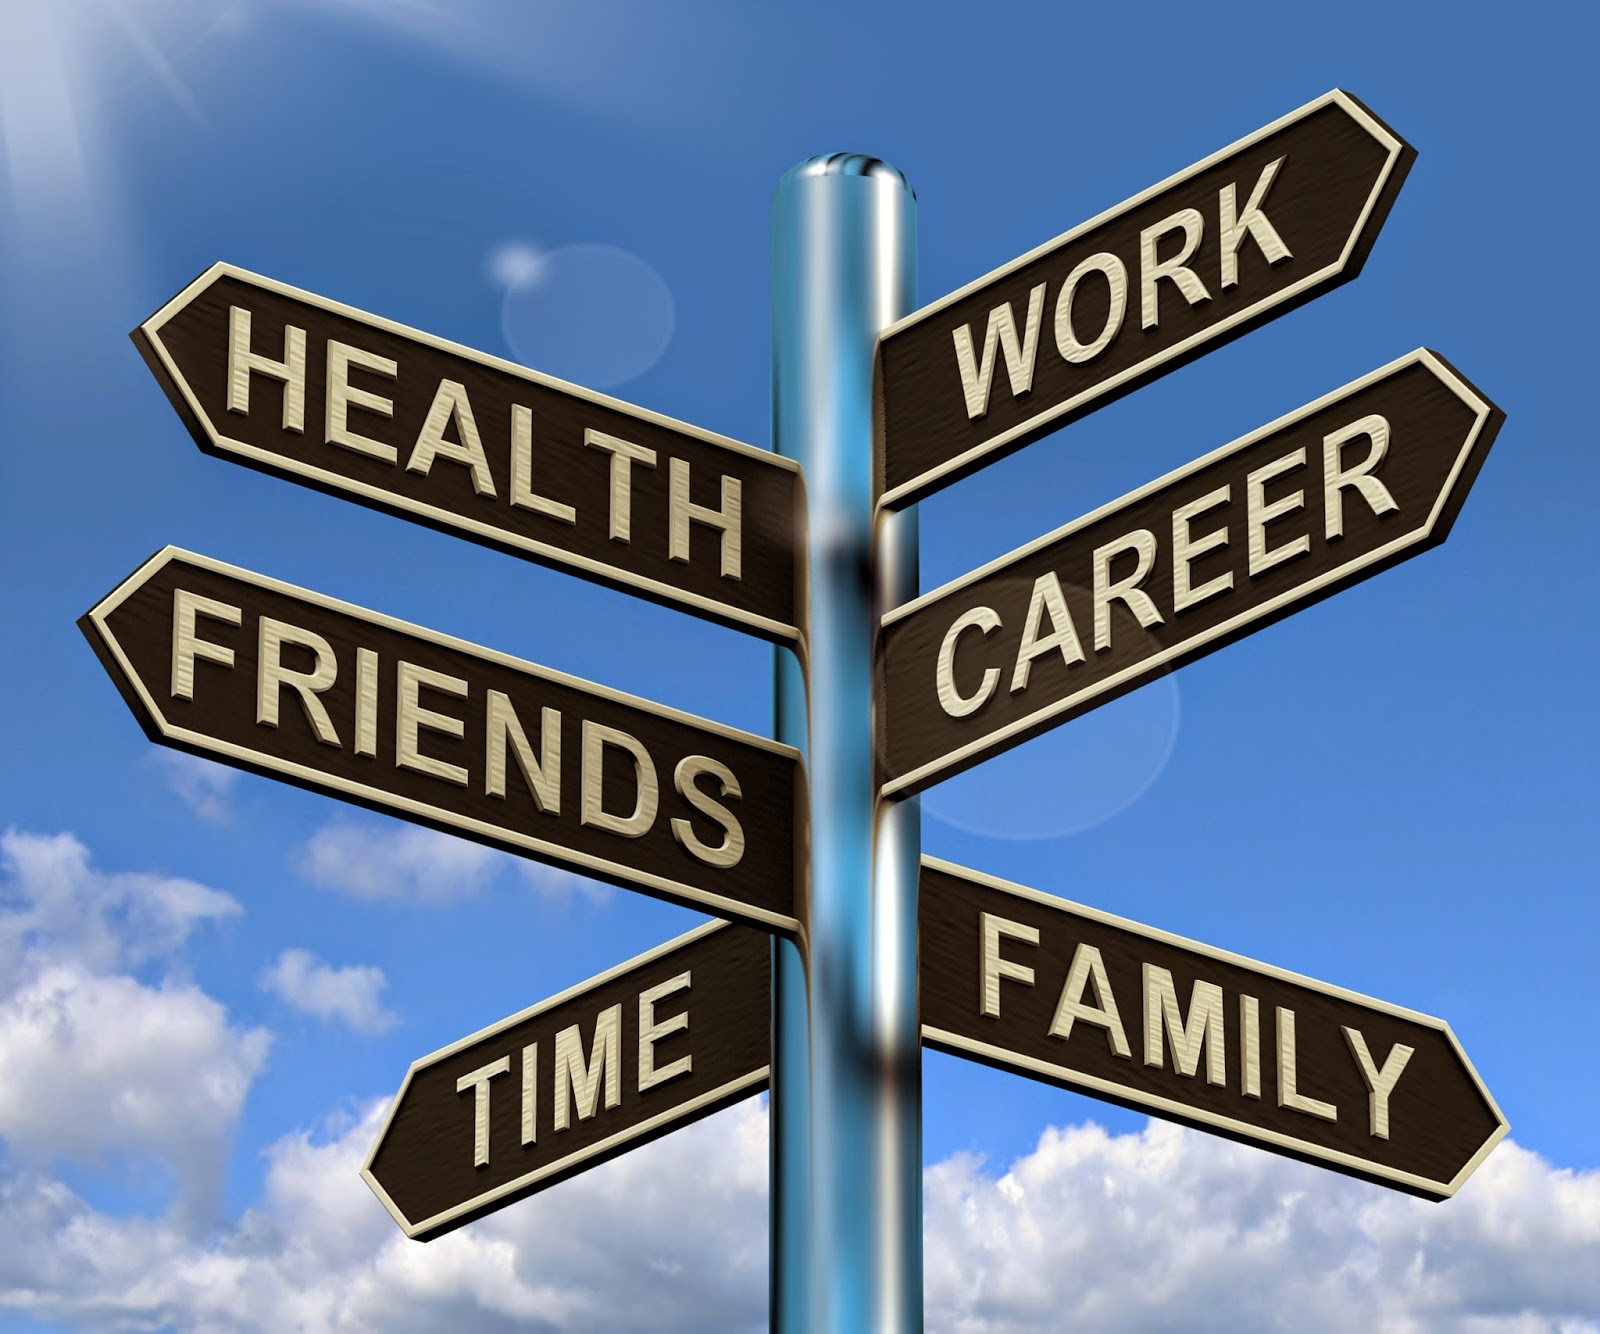 Health, Work, Career, Friends, Time, Family